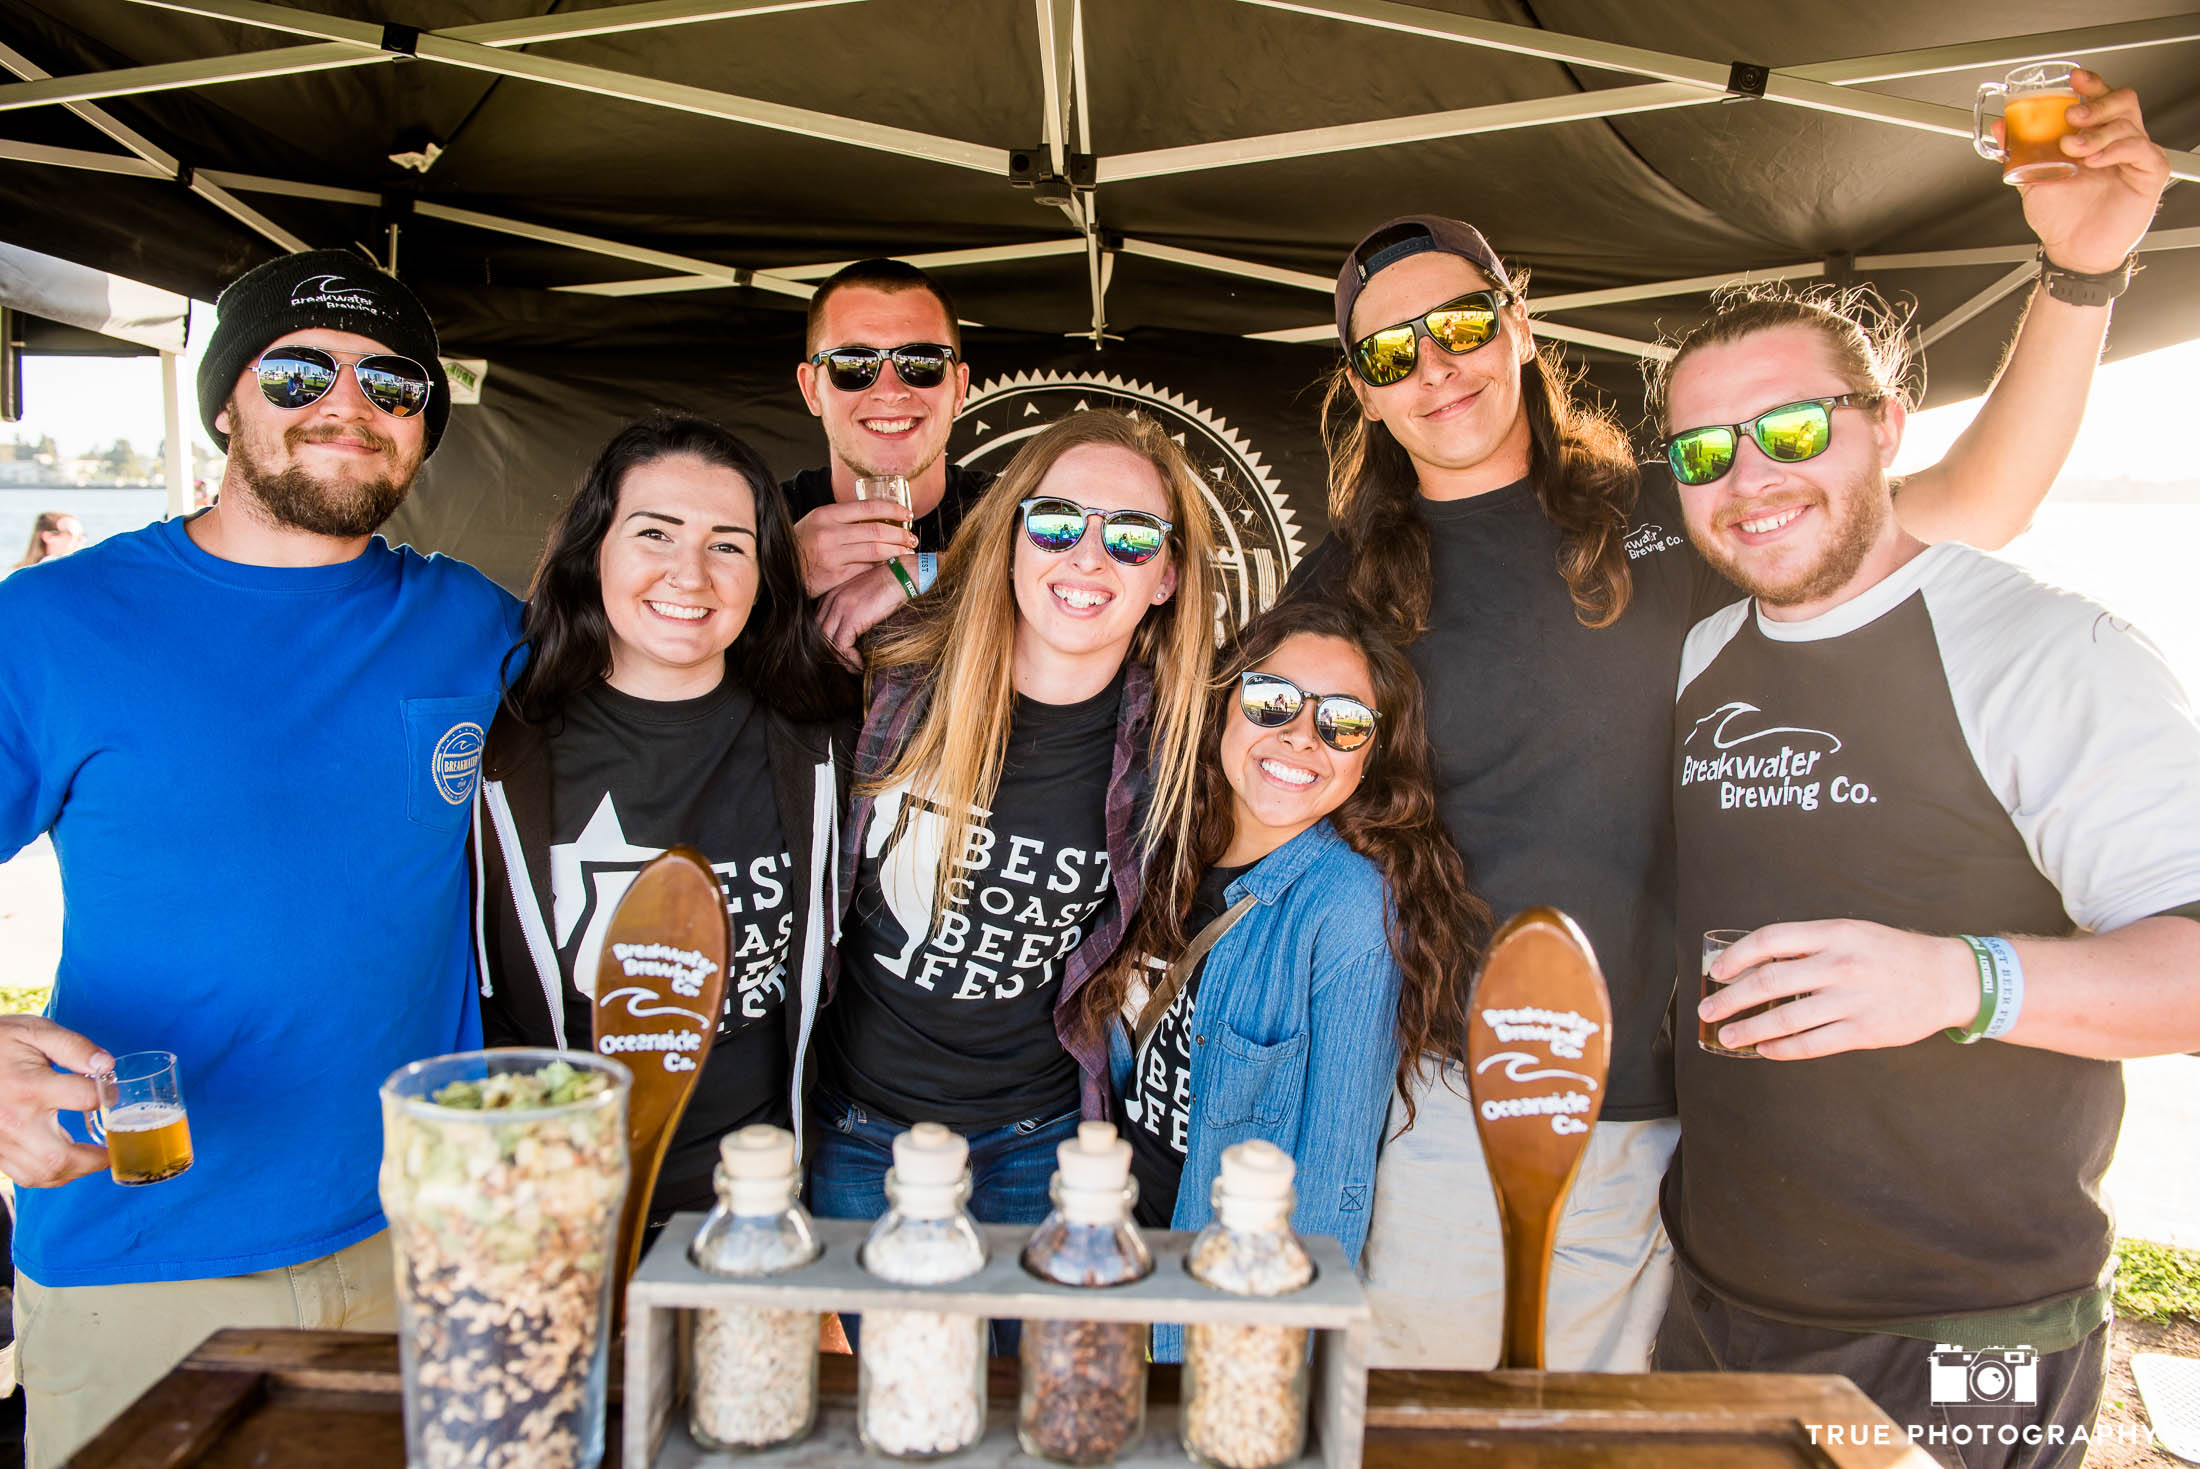 Young eventgoers have fun drinking beer at Best Coast Beer Fest in Embarcadero Park